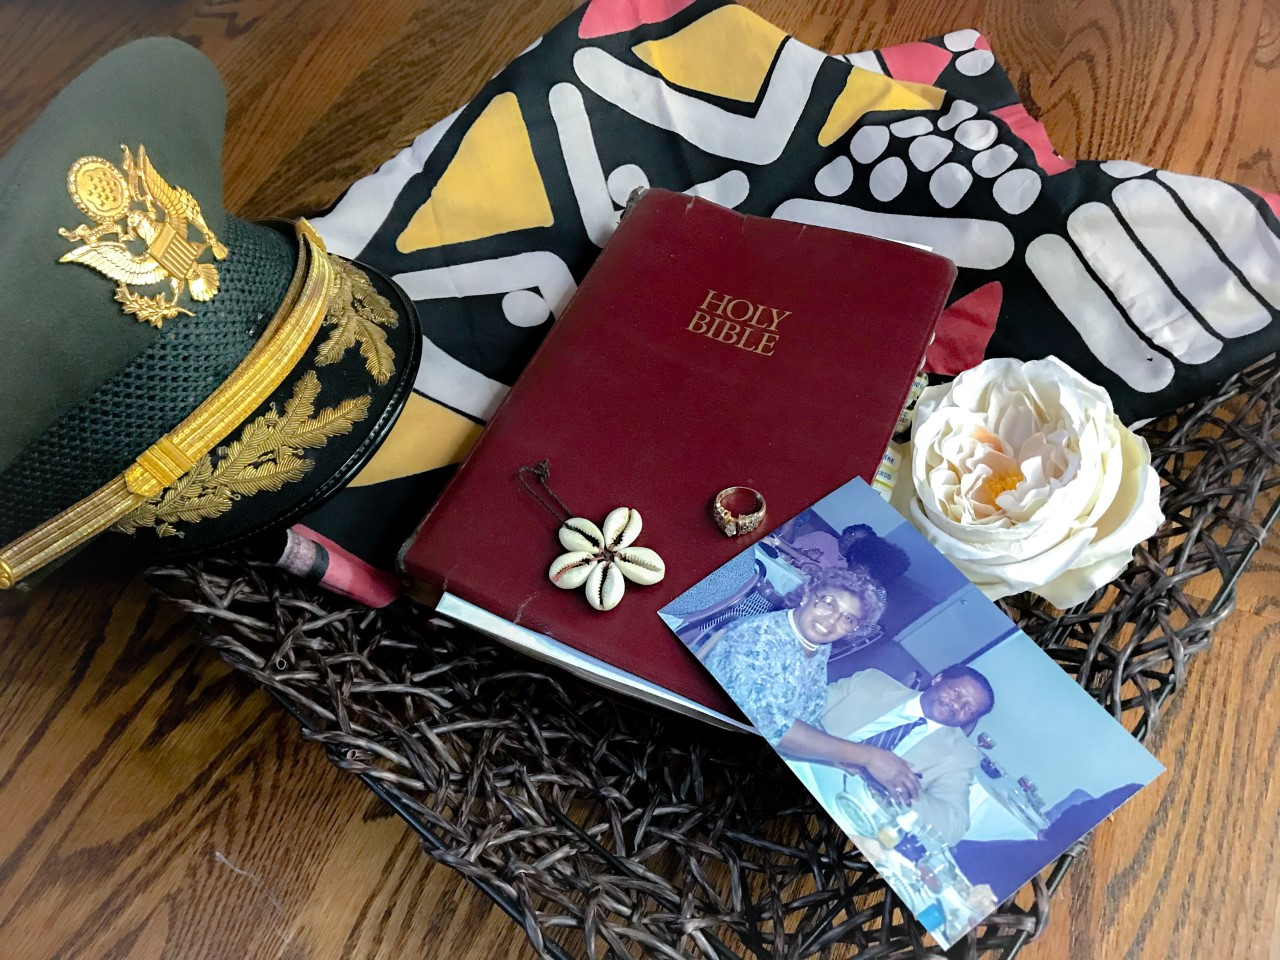 Military hat, brown Bible, photograph of an older Black woman and older Black man, large white flower, and gold engagement ring